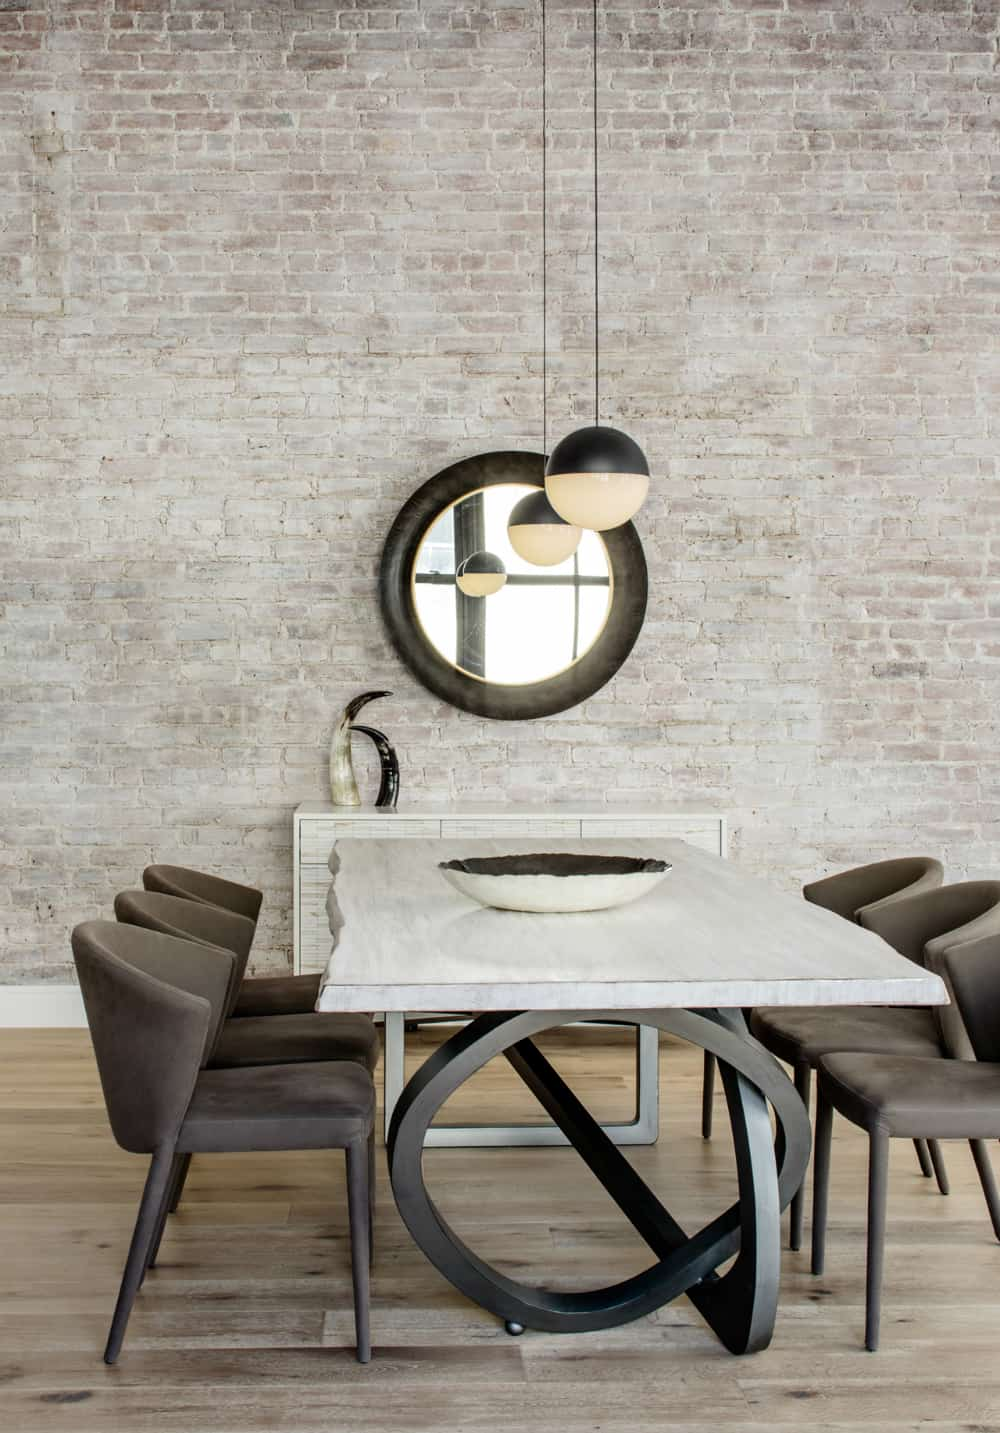 Each furnishing is intended to bring character to the brick-walled pipe-showing room